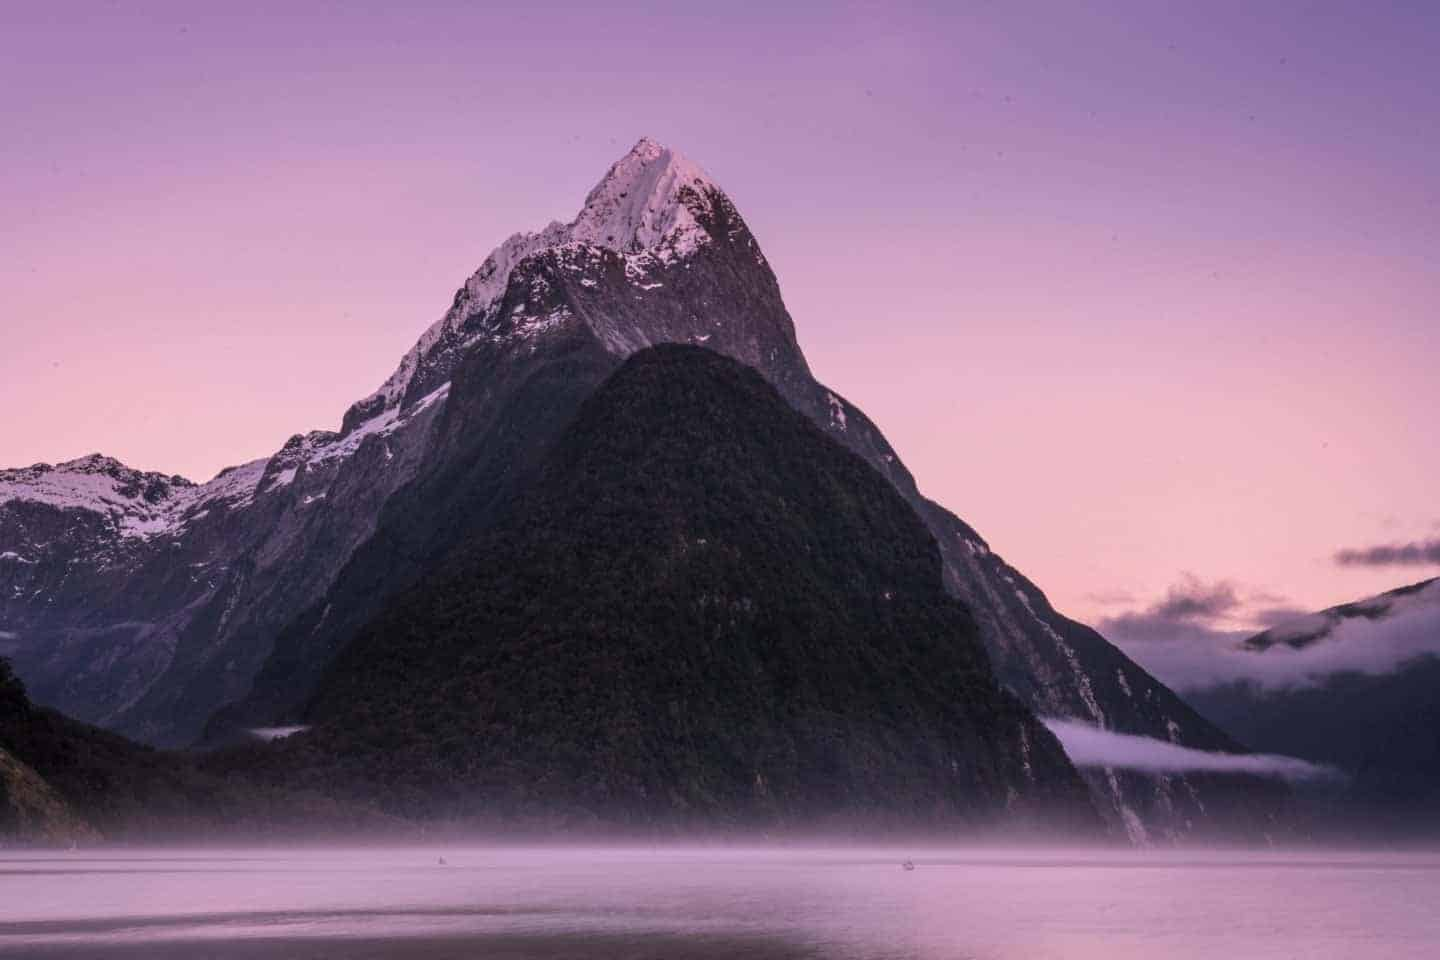 A snow-capped Mitre Peak looms tall on a moody morning at Milford Sound in this NZ landscape photograph.